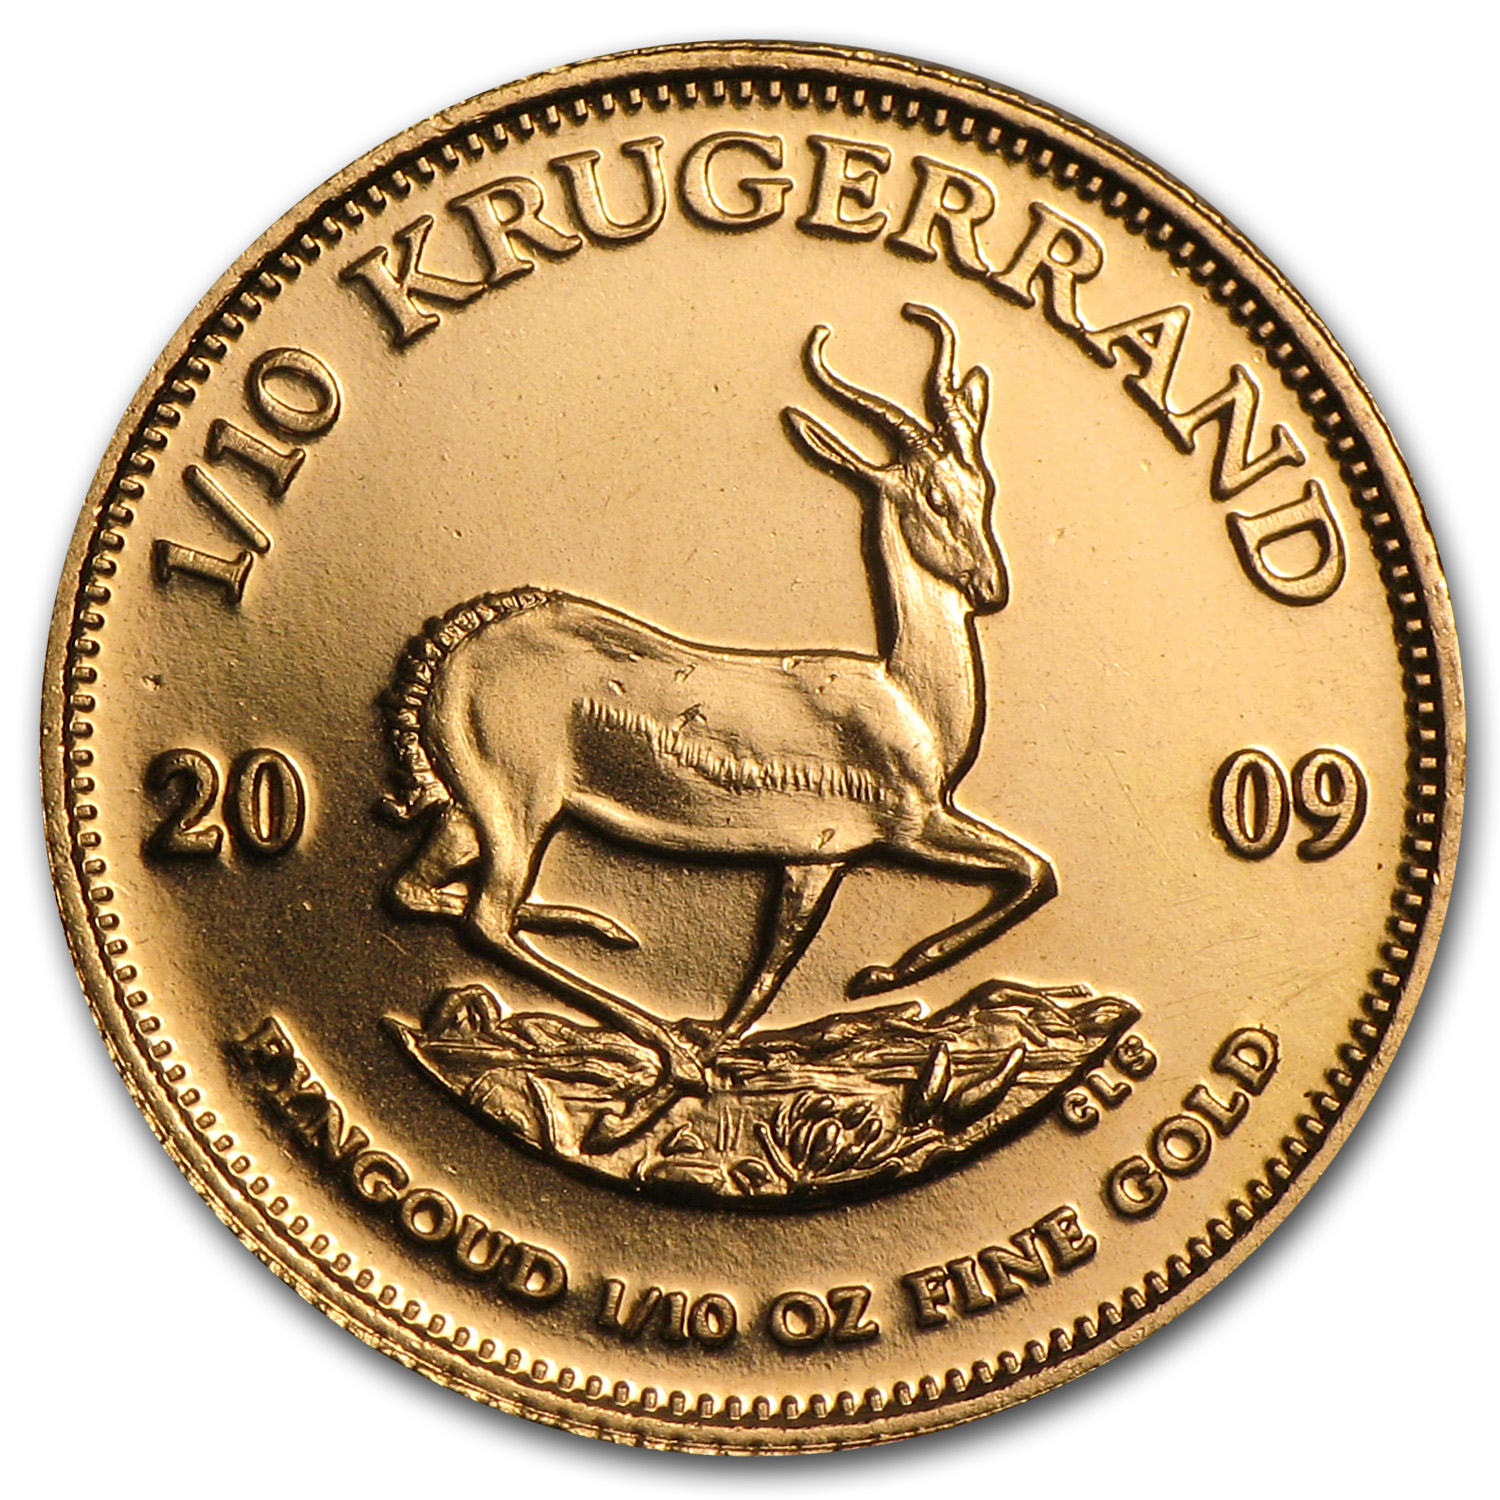 2009 South Africa 1/10 oz Gold Krugerrand